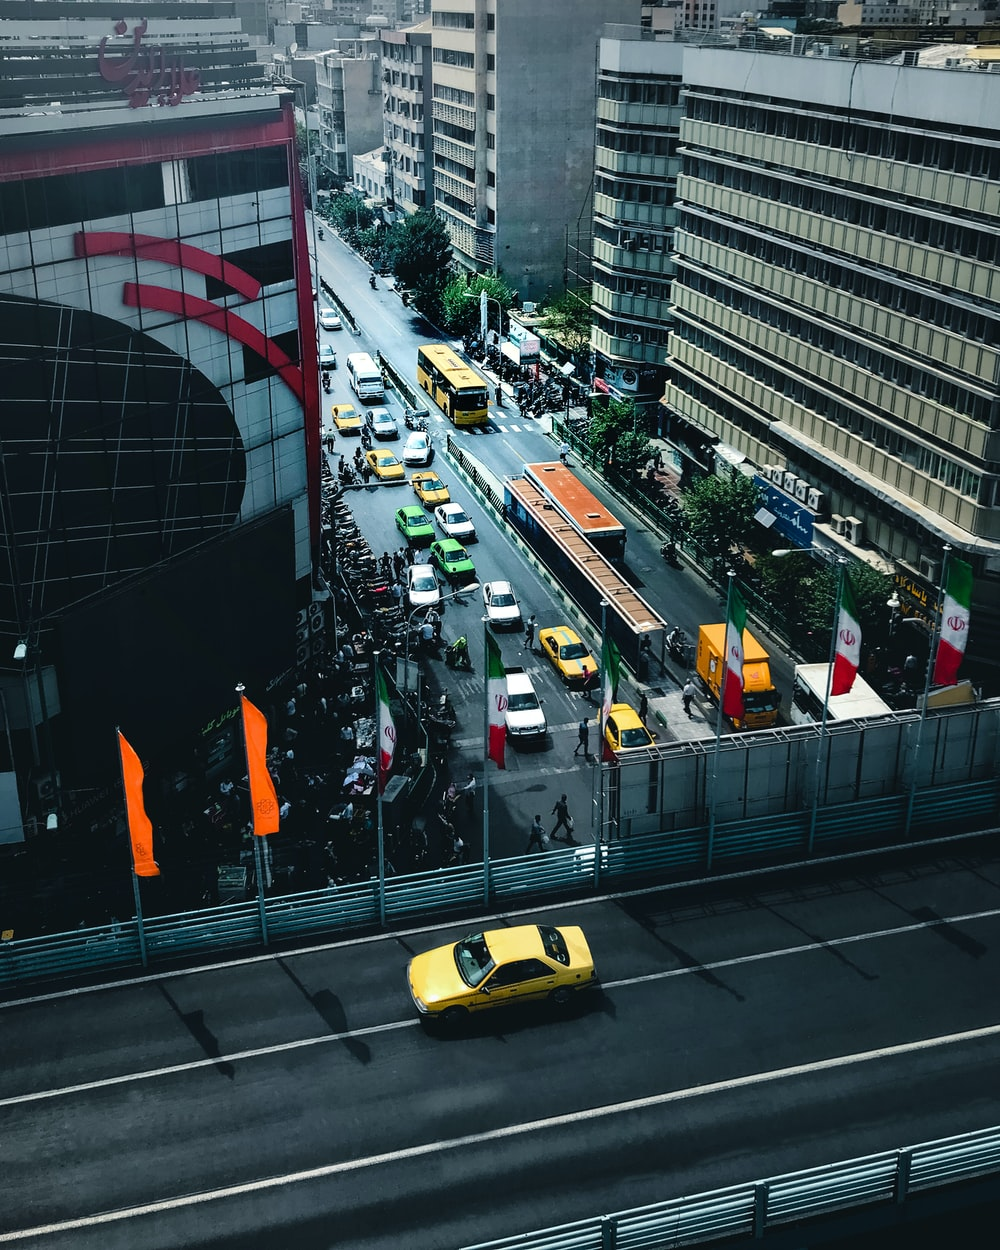 yellow taxi on road near high rise buildings during daytime